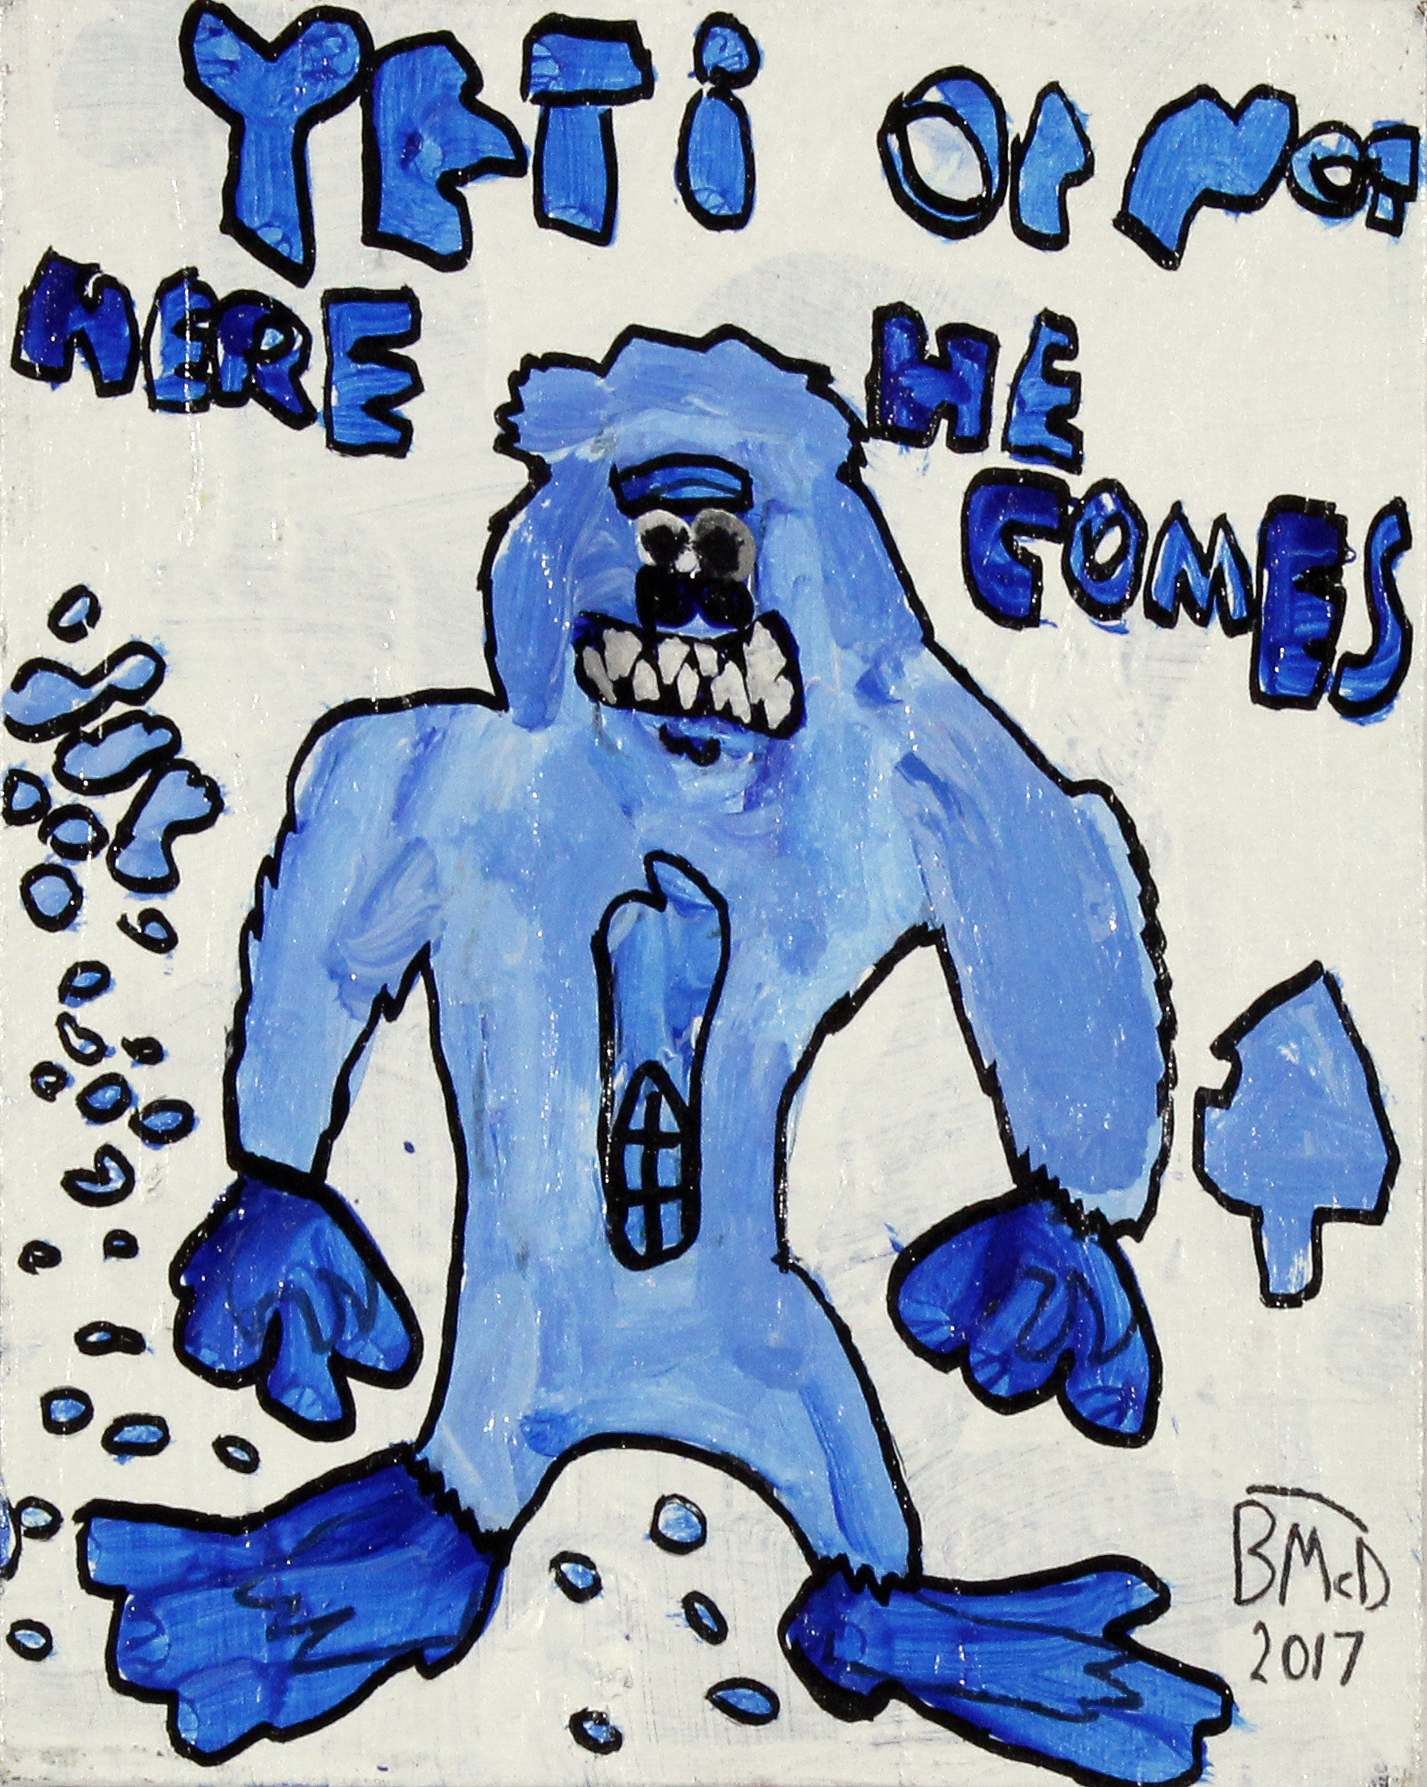 "Yeti or not Here He Comes . 2018. Acrylic and paint marker on canvas panel. 11"" x 14"" framed."